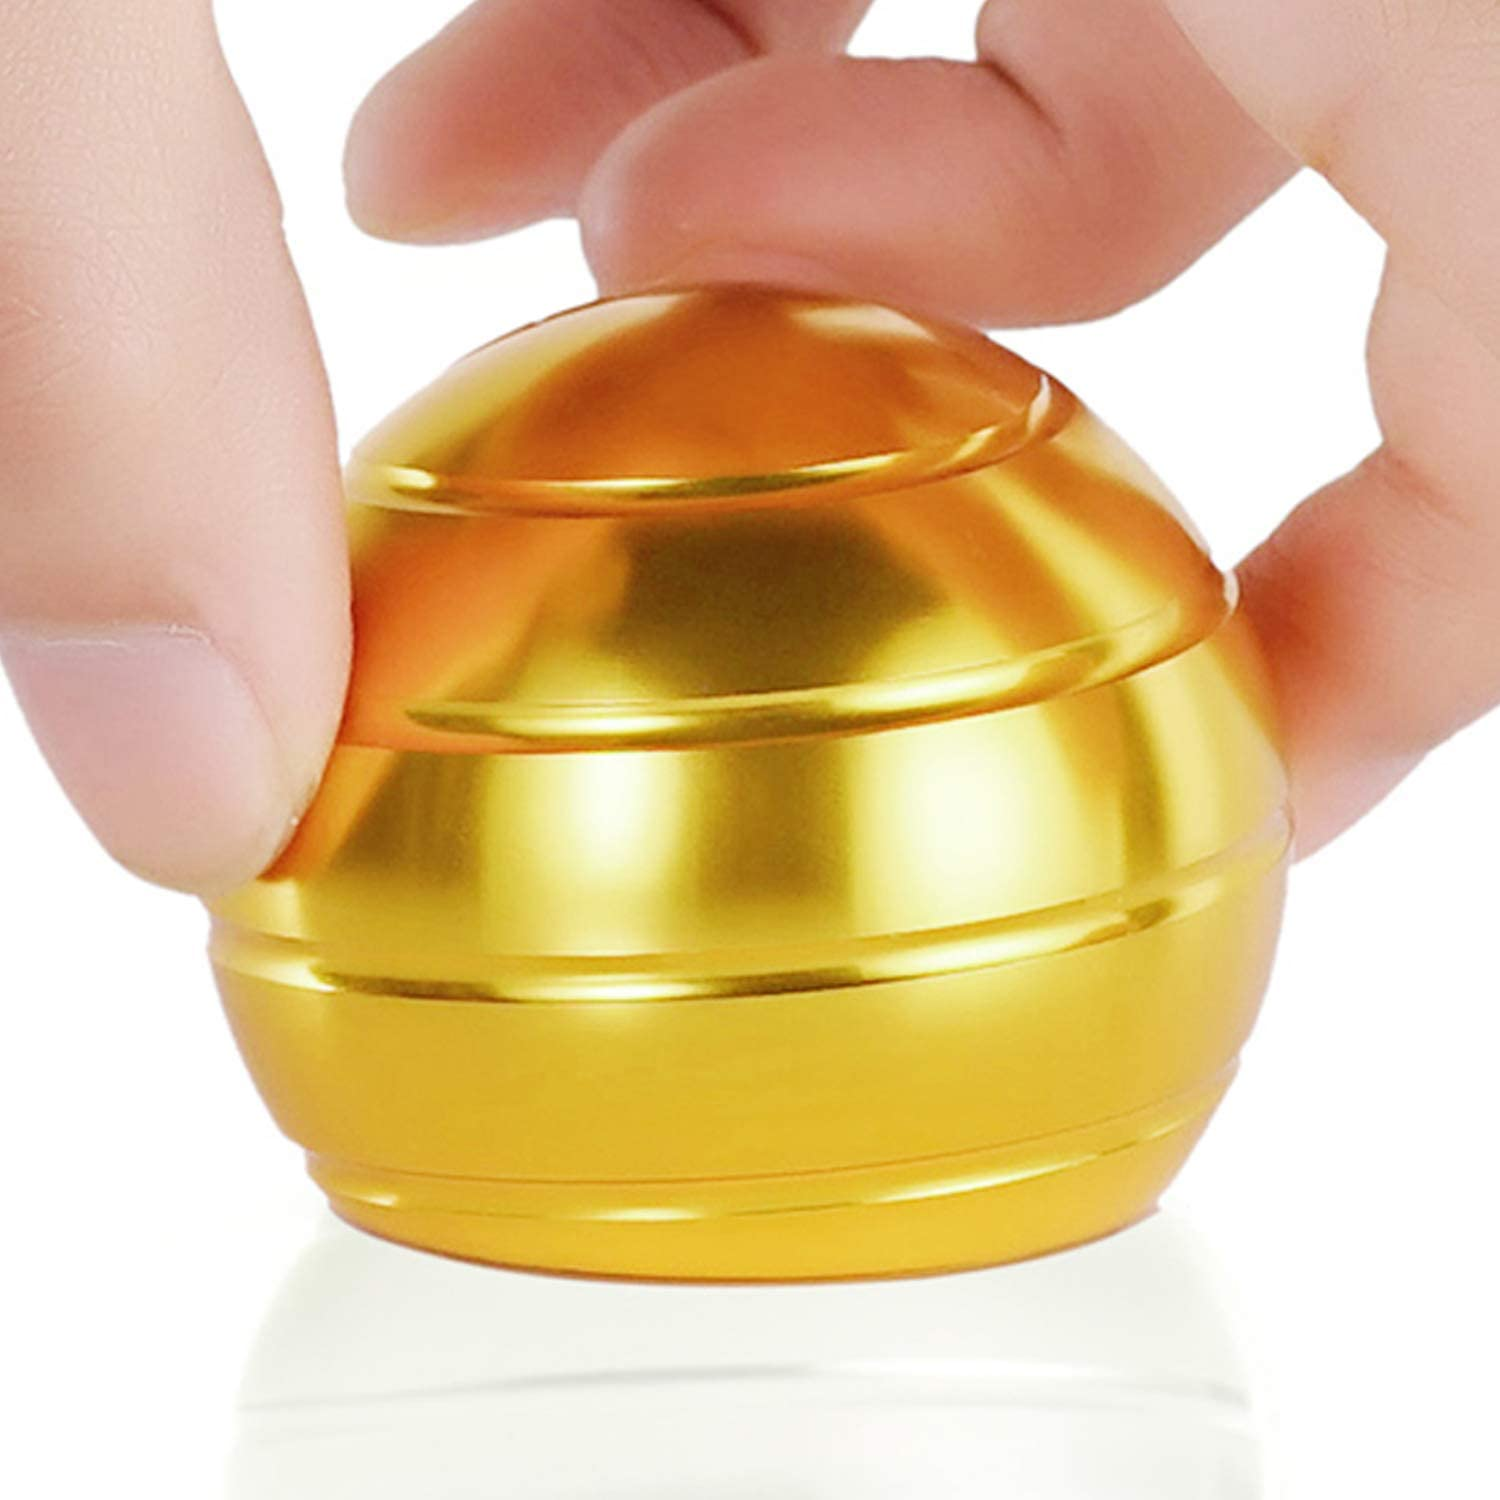 Desk Fidget Toys Safe for Adults & Kids New Version Metal Stress Reliever Kinetic Spinning Ball Unique Physics Art Gadget for Office & Home Anti Anxiety ADHD Relief Autism Relief Relaxation(Gold)